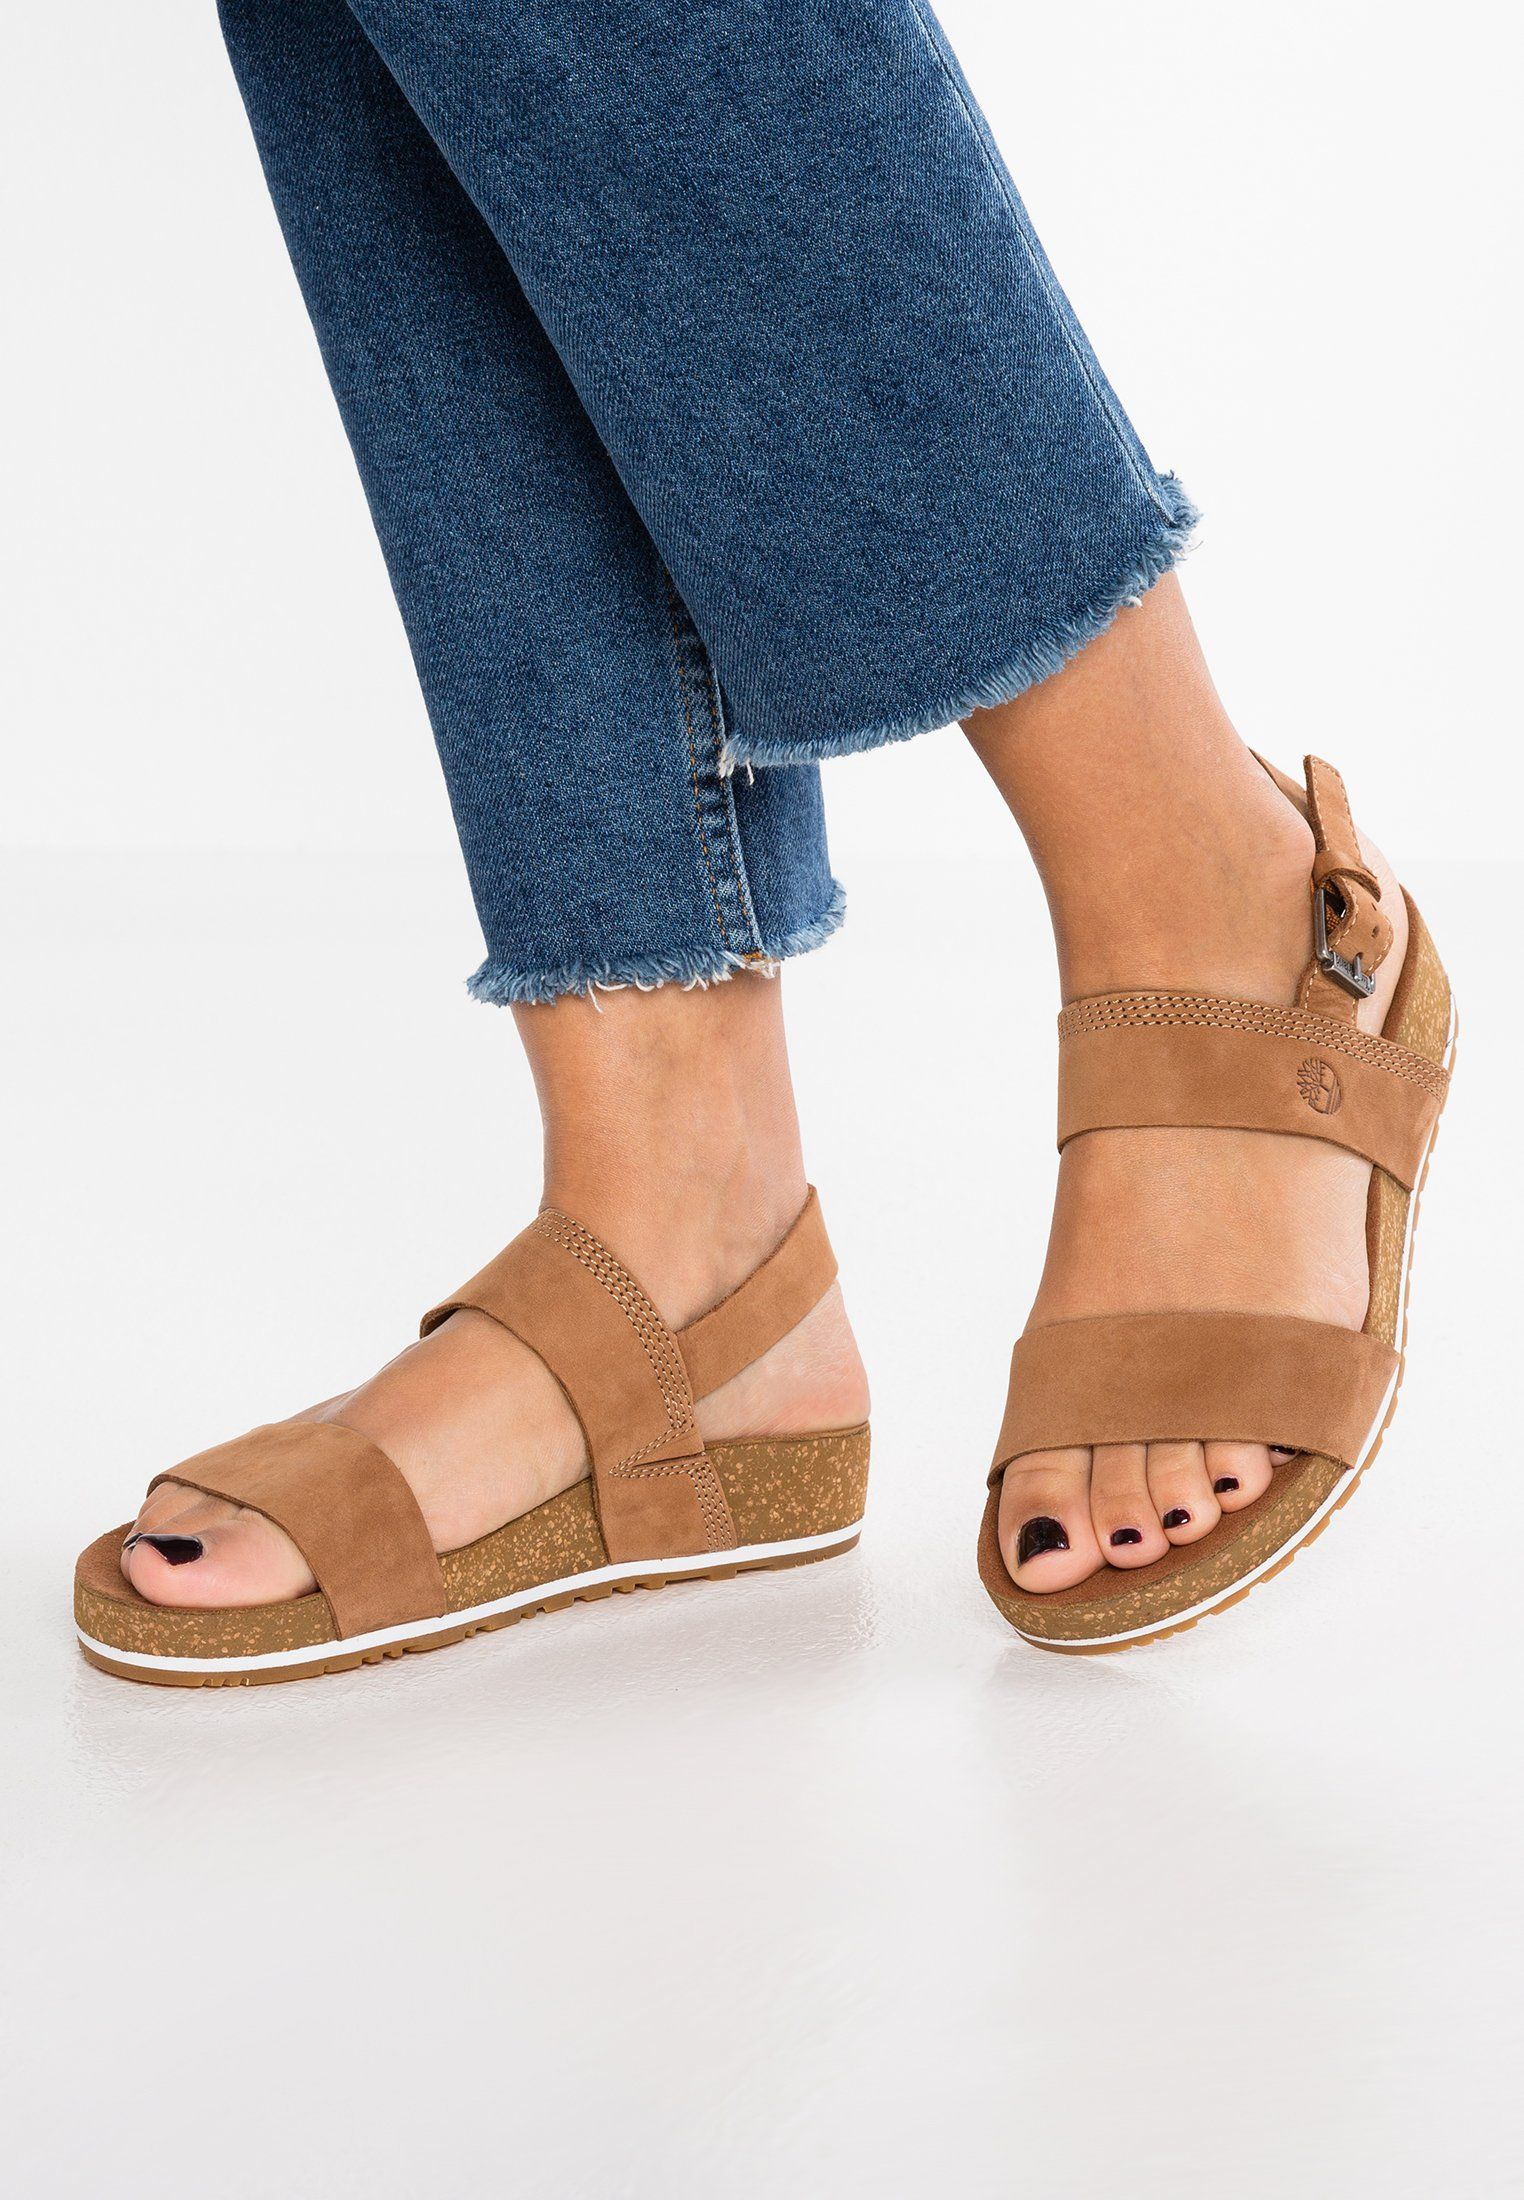 b608c3ed810e Timberland MALIBU WAVES BANDS - Platform sandals - saddle for £64.99  (16 03 18) with free delivery at Zalando